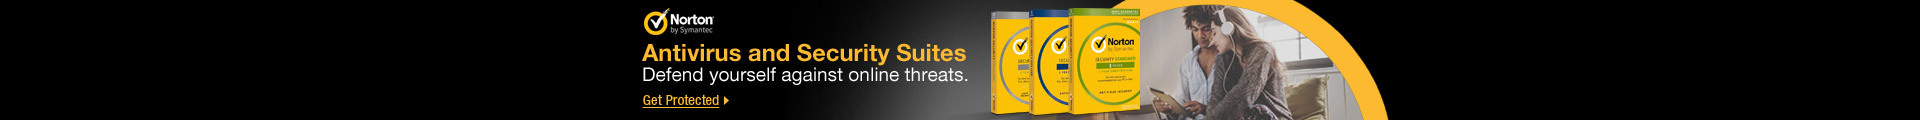 Antivirus and Security Suites